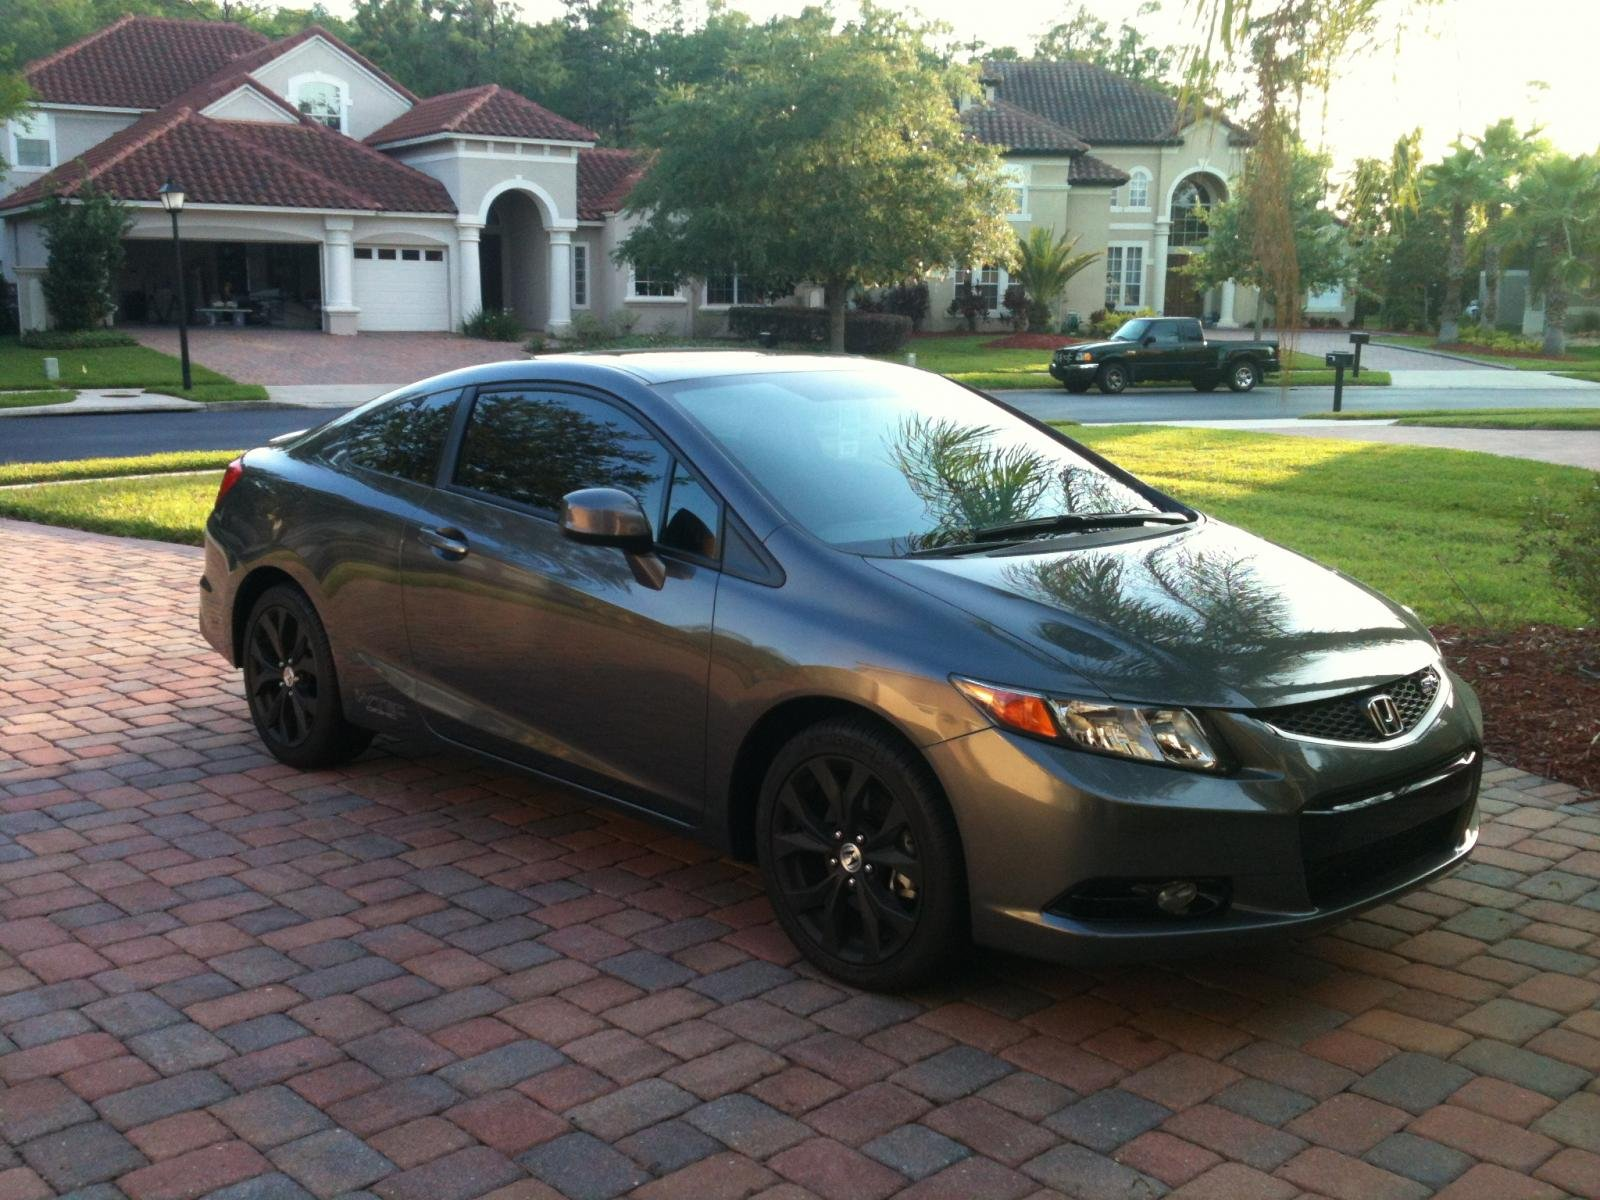 Painted Rims For Honda Civic Si Coupe Page 2